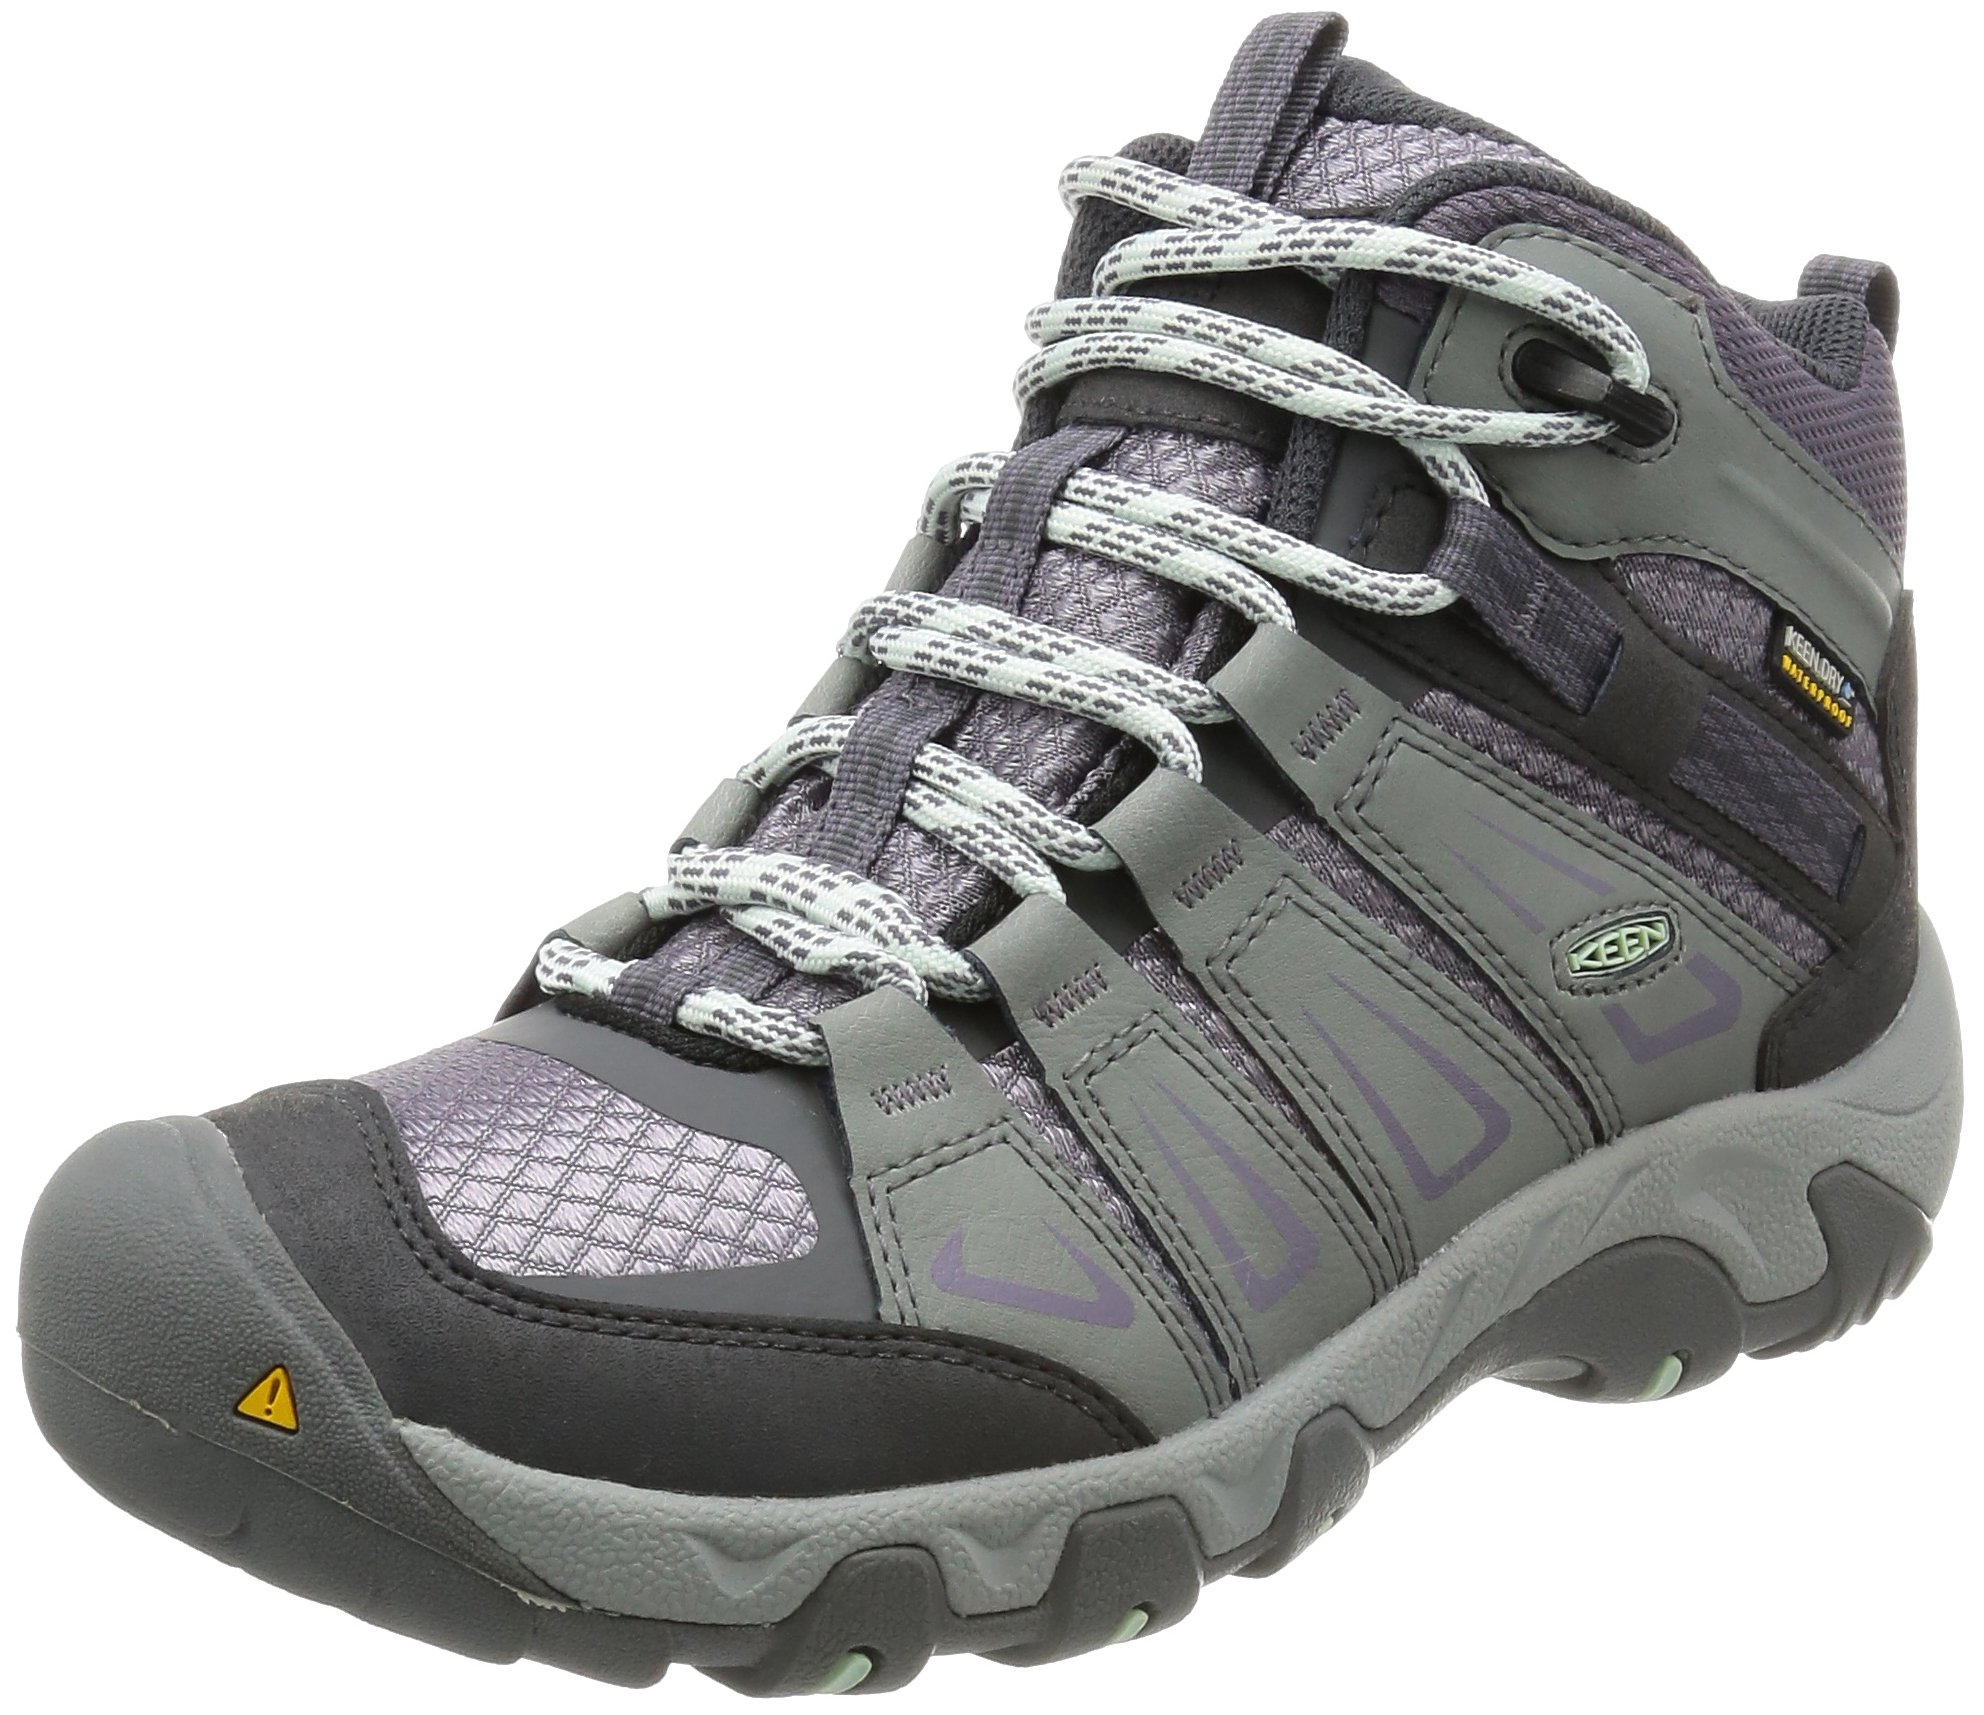 KEEN Women's Oakridge Mid Waterproof Boot, Gray/Shark, 11 M US